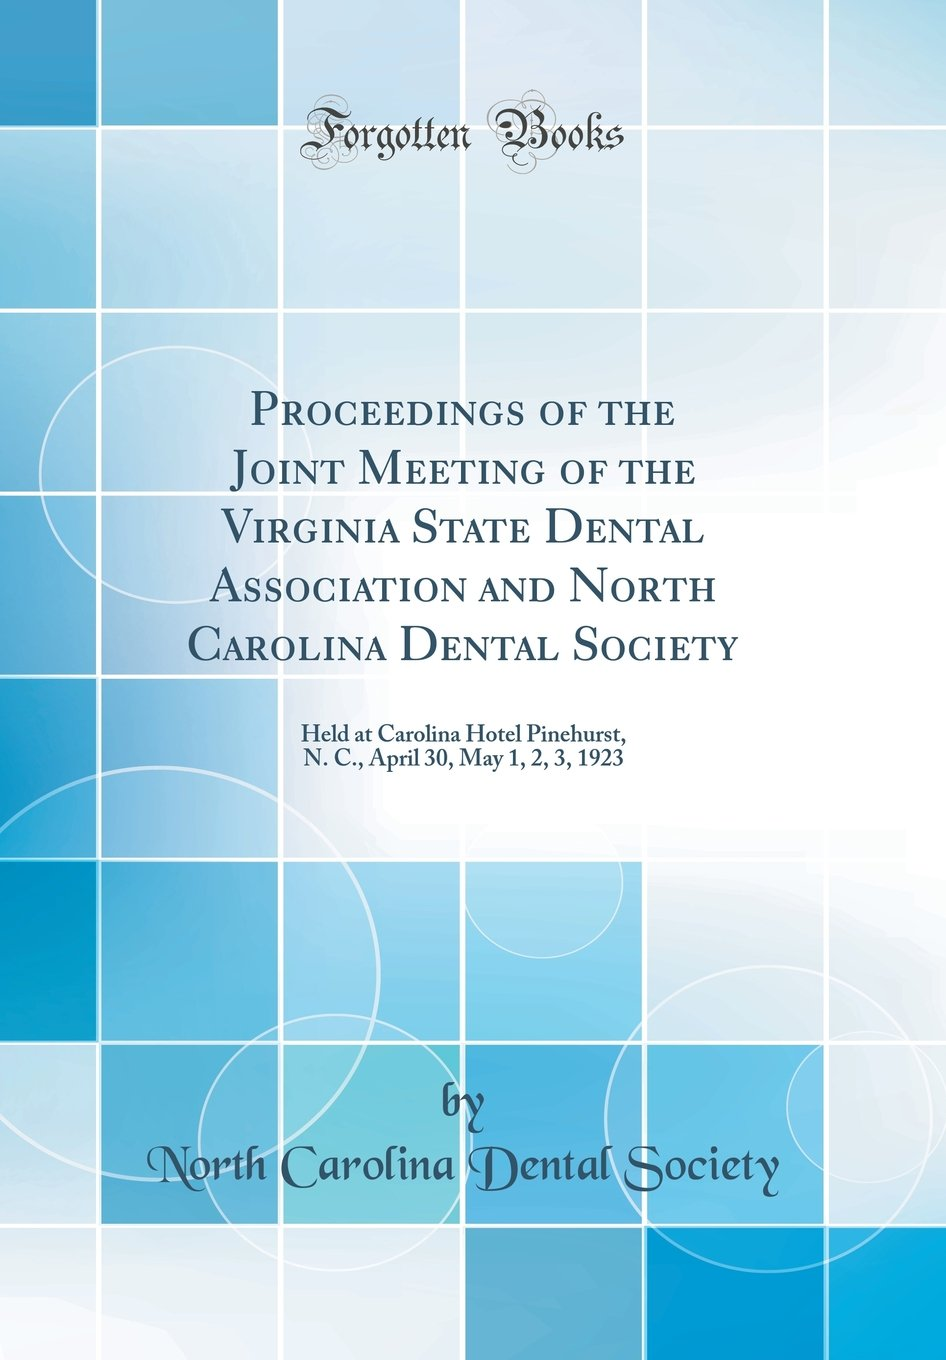 Download Proceedings of the Joint Meeting of the Virginia State Dental Association and North Carolina Dental Society: Held at Carolina Hotel Pinehurst, N. C., April 30, May 1, 2, 3, 1923 (Classic Reprint) ebook